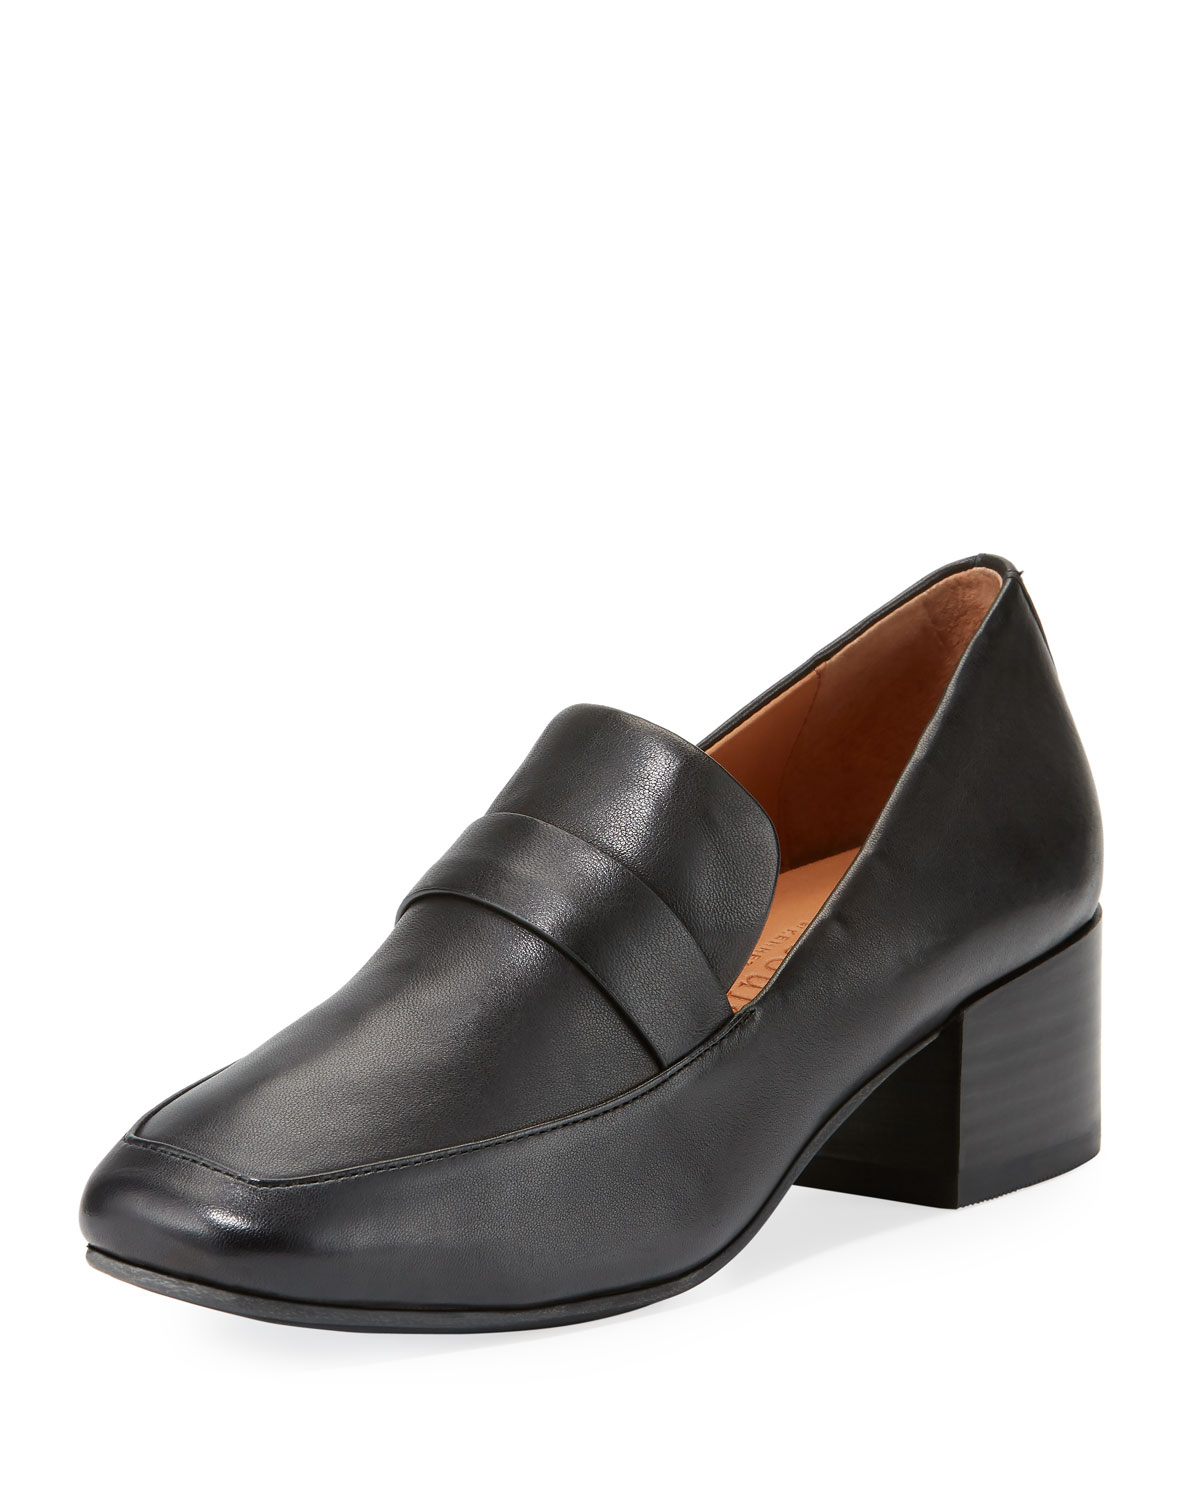 9029268c284 Gentle Souls Eliott Low-Heel Leather Loafer